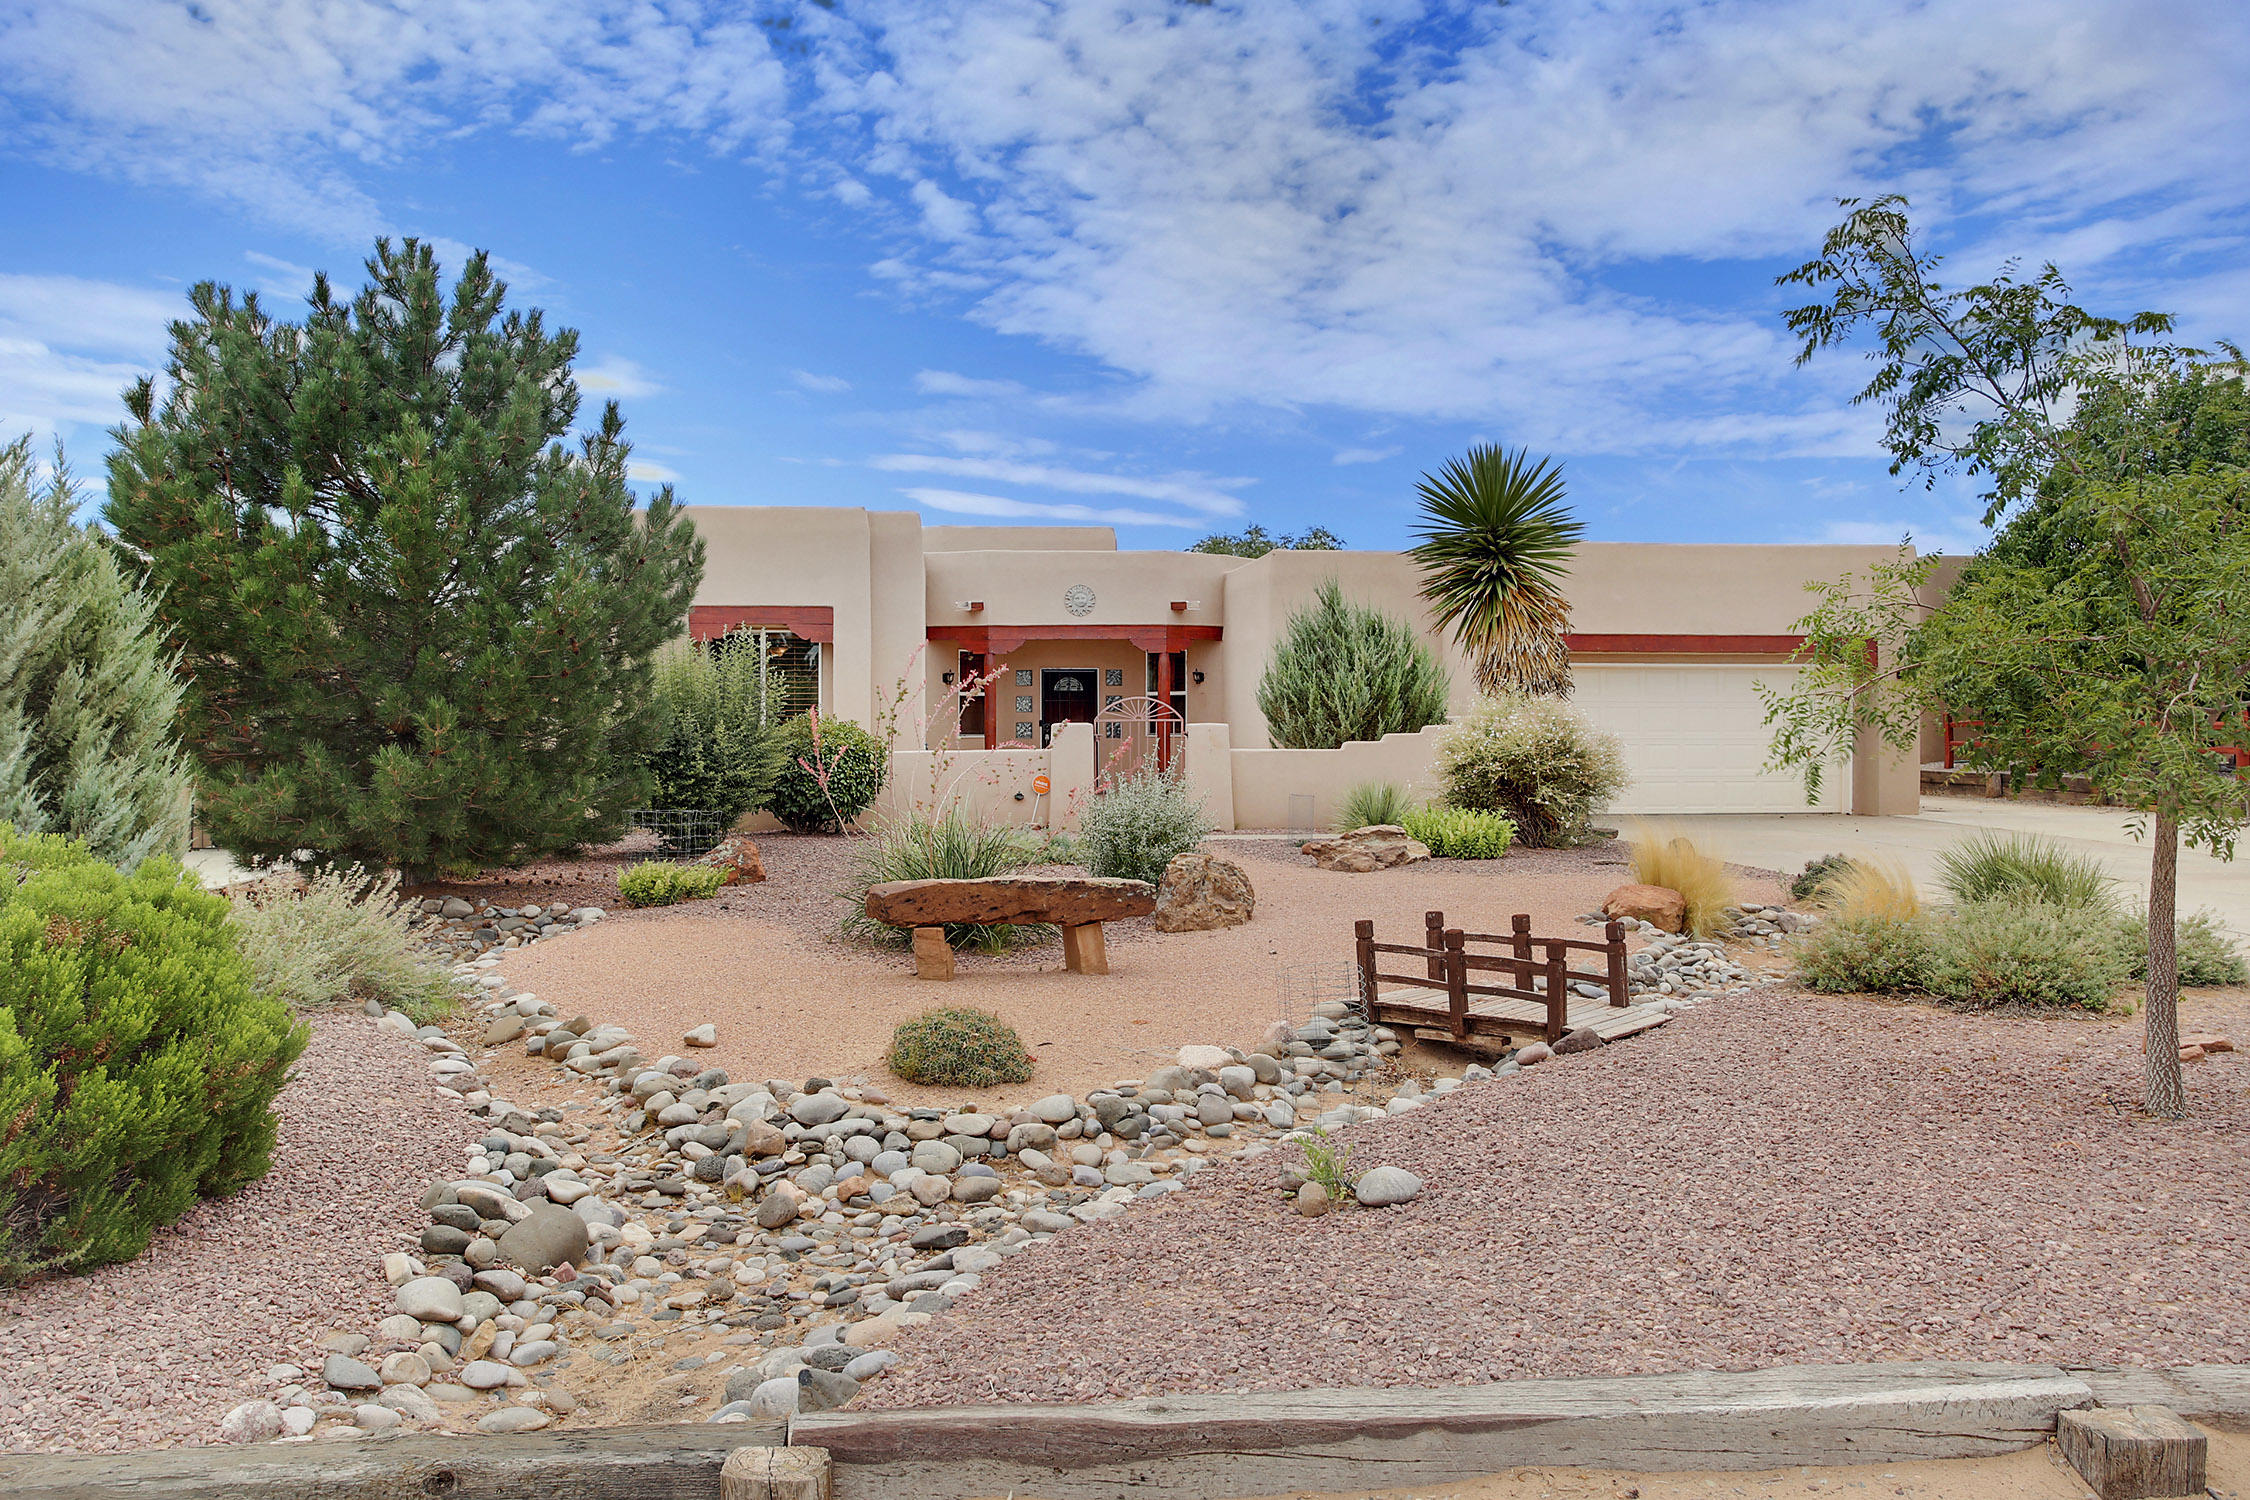 Million dollar views for under $500,000! This well built, beautifully maintained home sits on an outstanding .50 acre with incredible views of the Sandias.  Abundant natural light throughout and a lovely, open floor plan.  Kitchen boasts granite counter tops and stainless steel appliances. Stove is 1/2 electric and 1/2 induction and is also plumbed for gas.  Wake up in your owner's suite to amazing views!  This bedroom has an enormous walk-in closet and spacious bath. Great separation between owner's suite and additional bedrooms. The  home has refrigerated air -  seller-owned solar panels keep electric bill under $9.00/month. The garage is oversized and finished.  Need a place to park the RV? The paved RV parking has 50amp electrical service available. Click More for additional info.